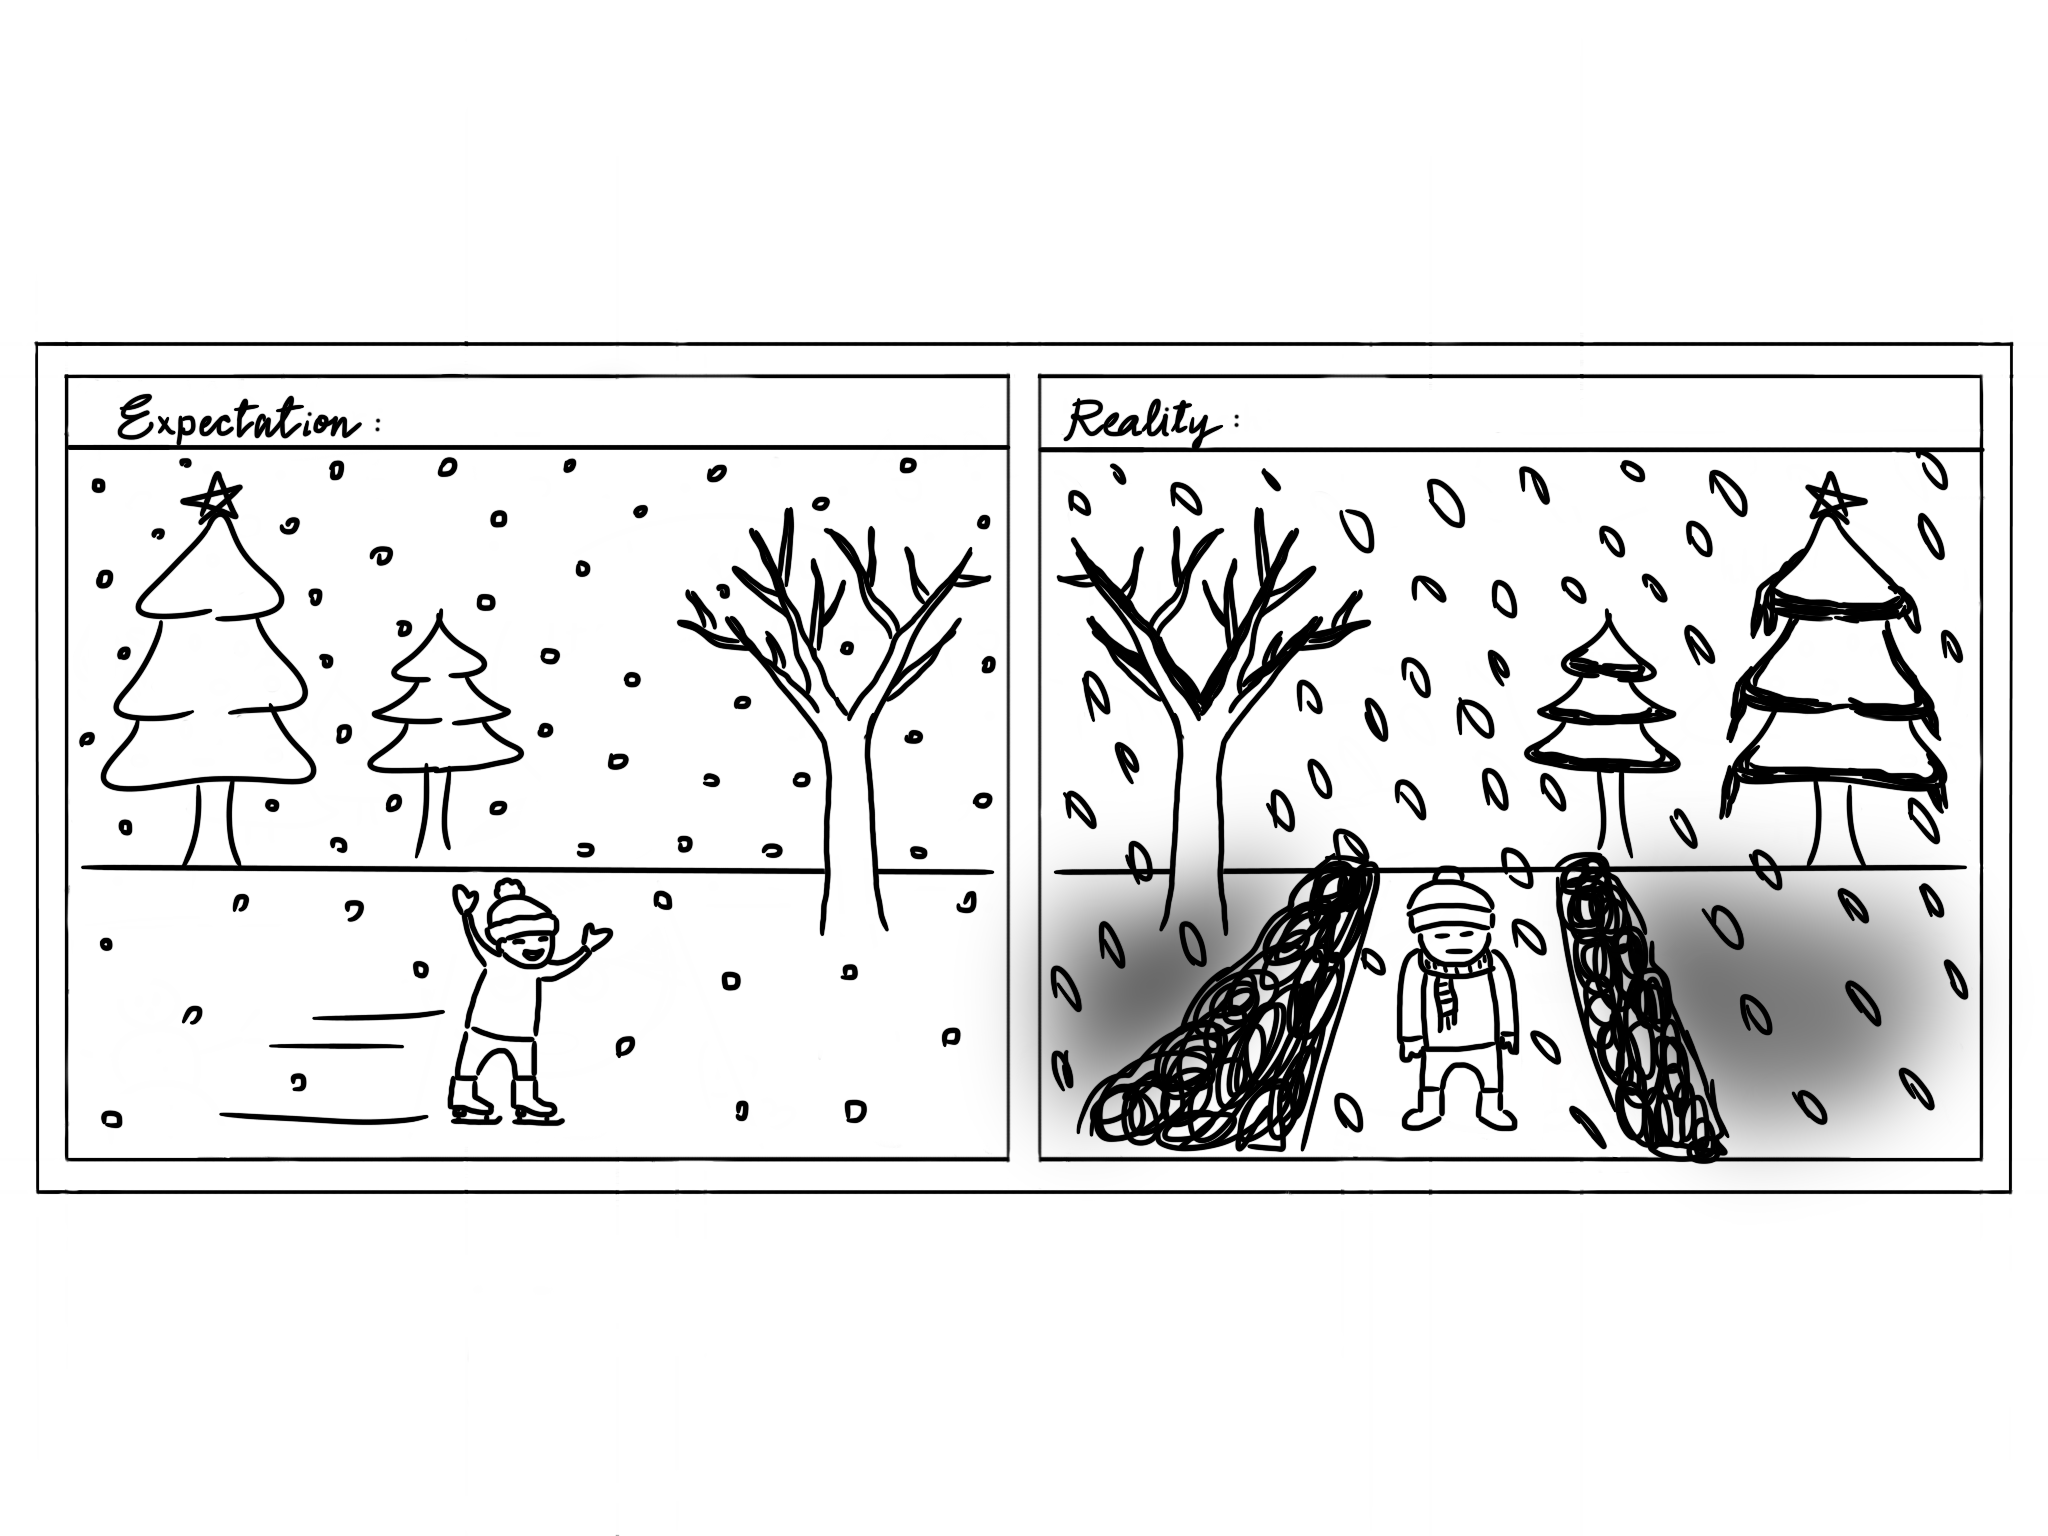 Comic of the expectation of winter, happy skating, vs the reality, cold and gray.